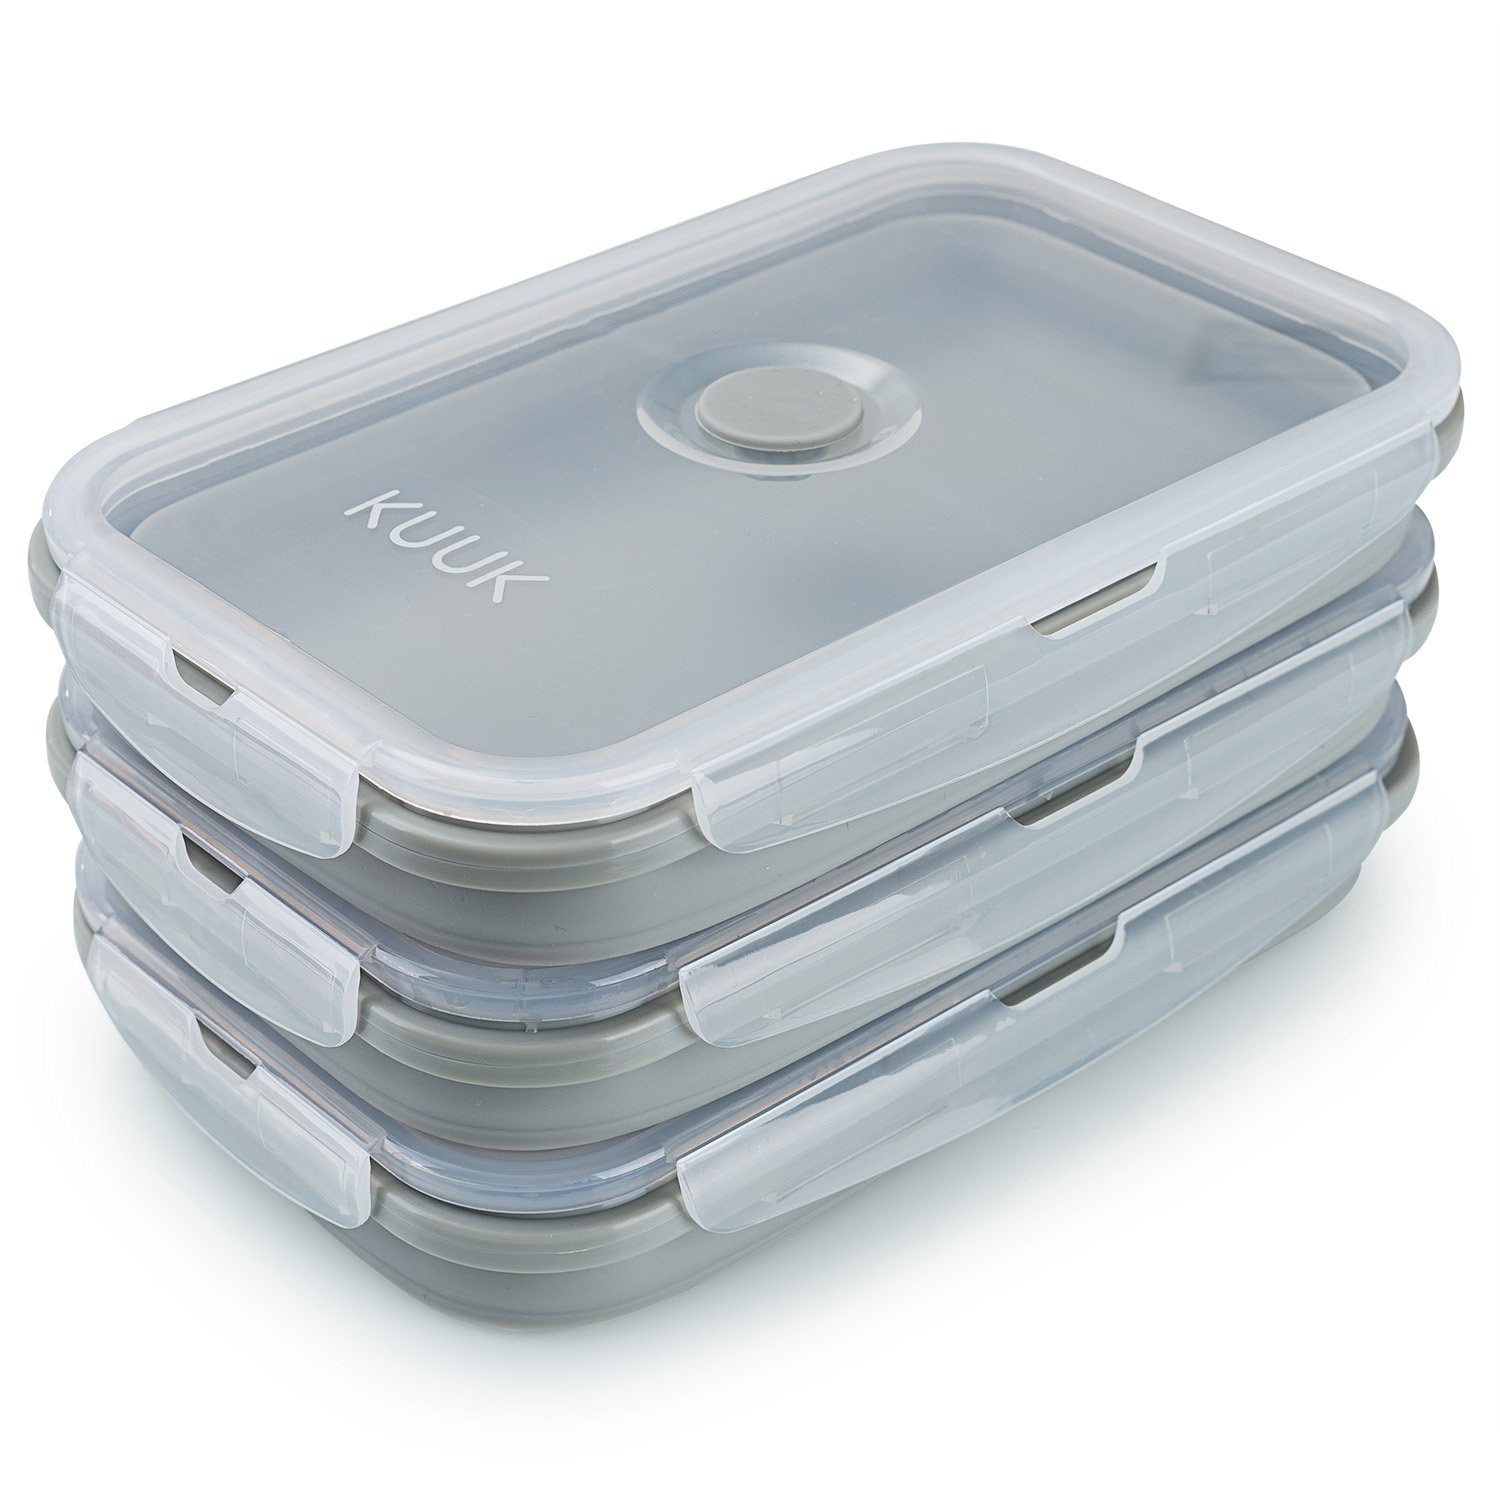 Collapsible Food Storage Container Silicone Kitchen Lunch